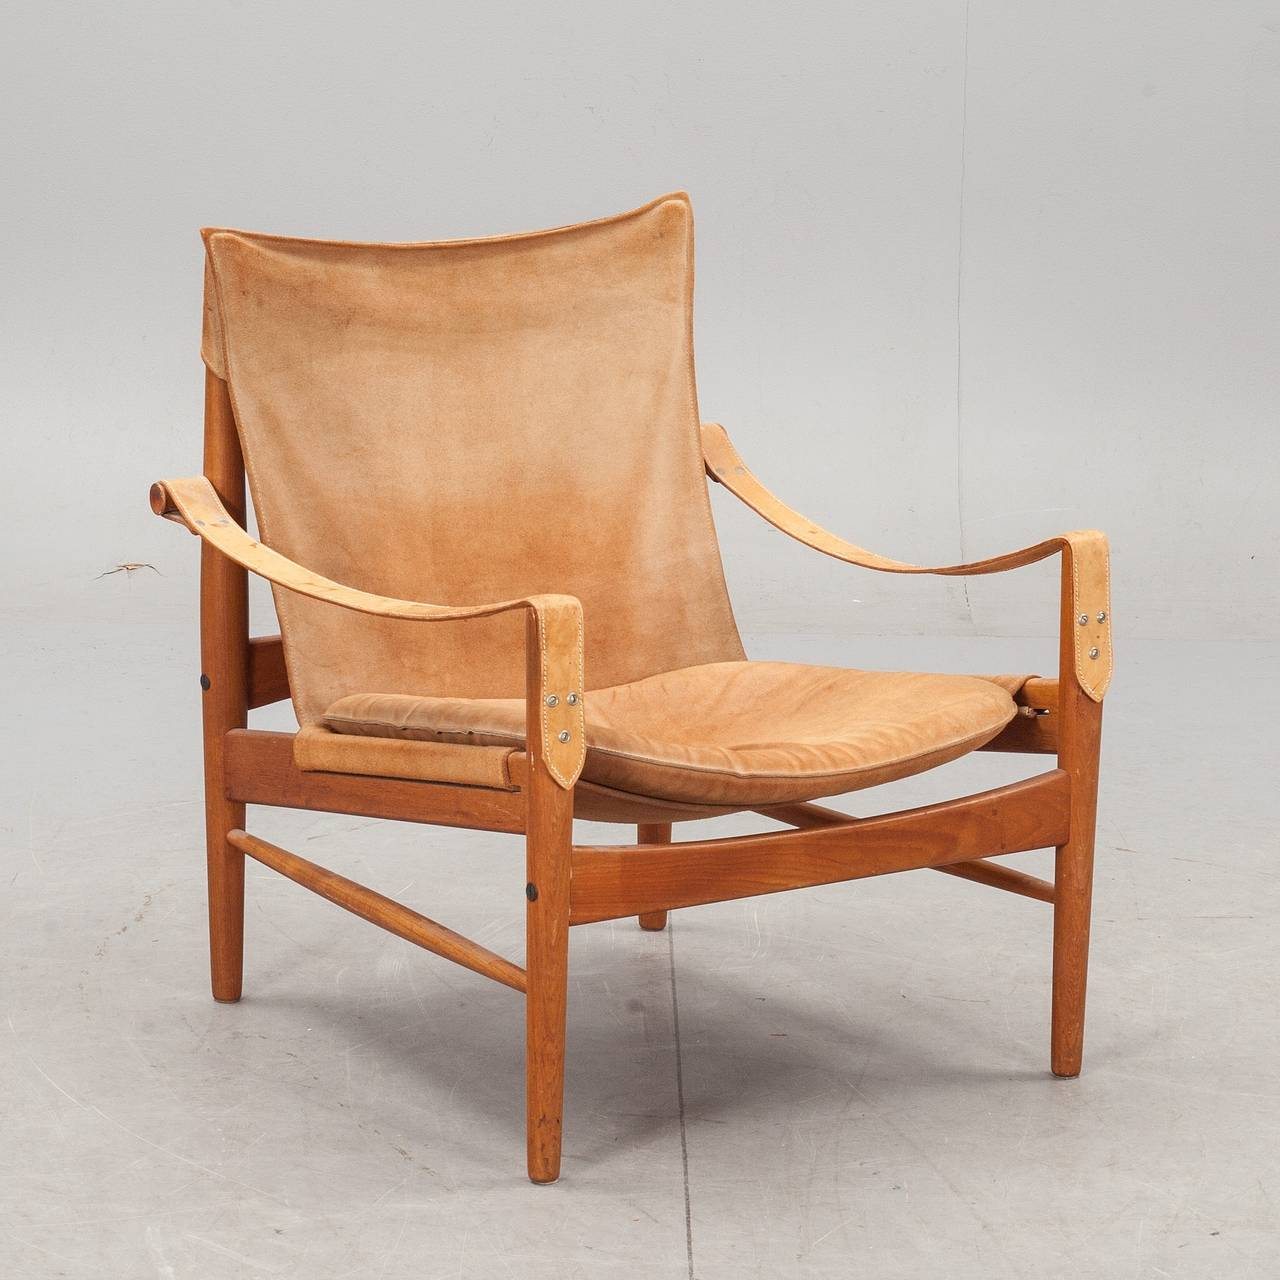 Lovely Hans Olsen, 1960s Suede And Leather Safari Chair 2